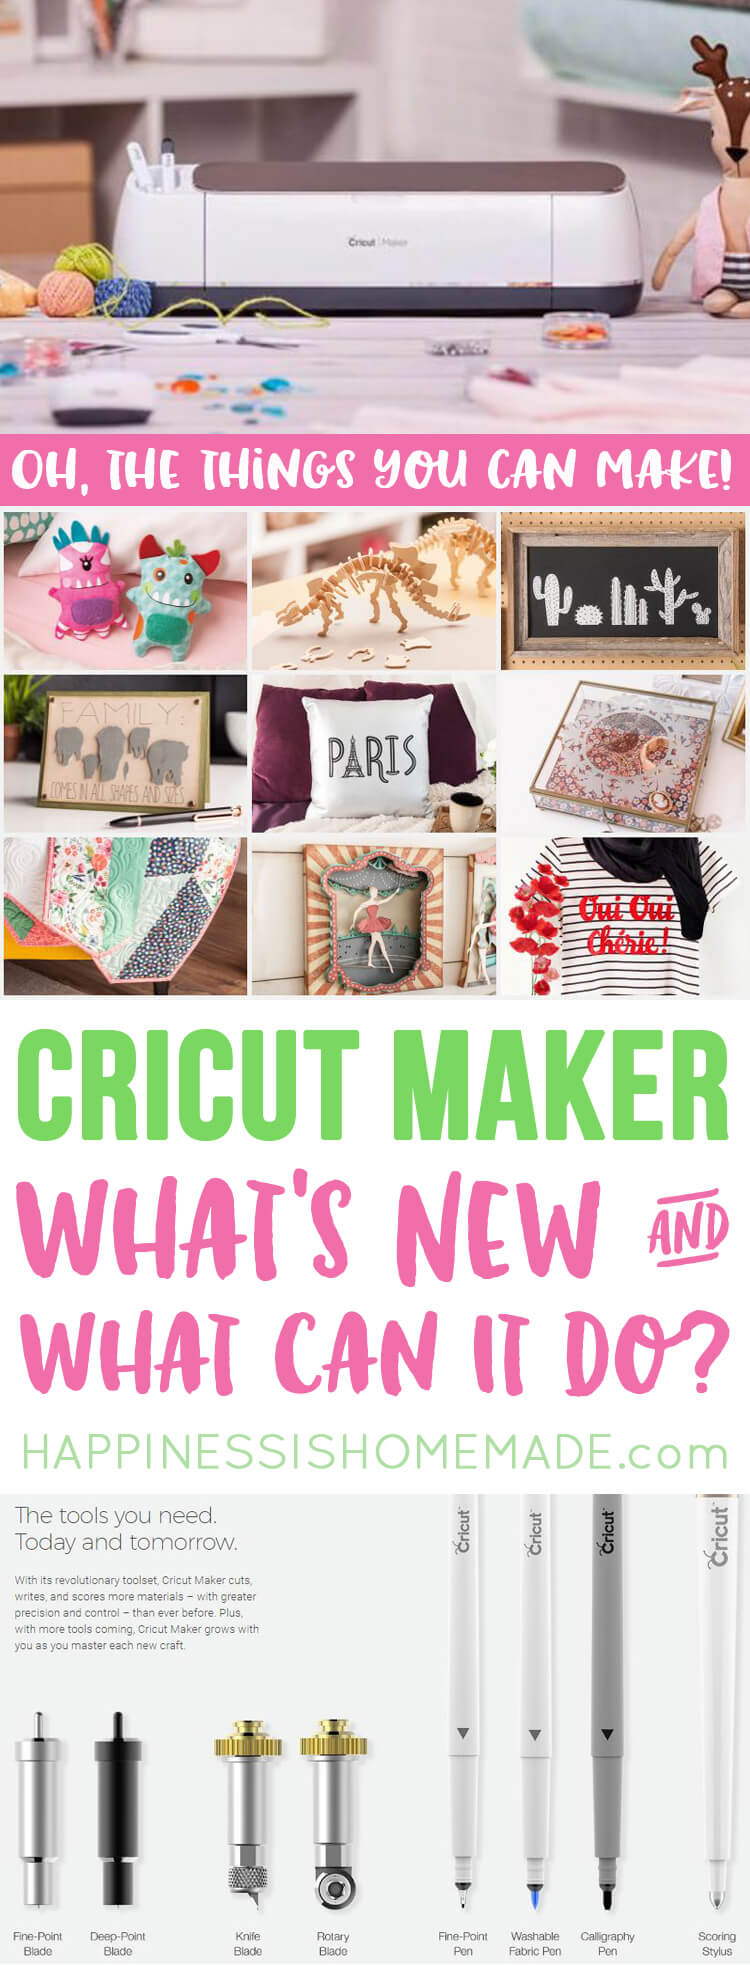 The Cricut Maker Machine - What's New and What Can It Do